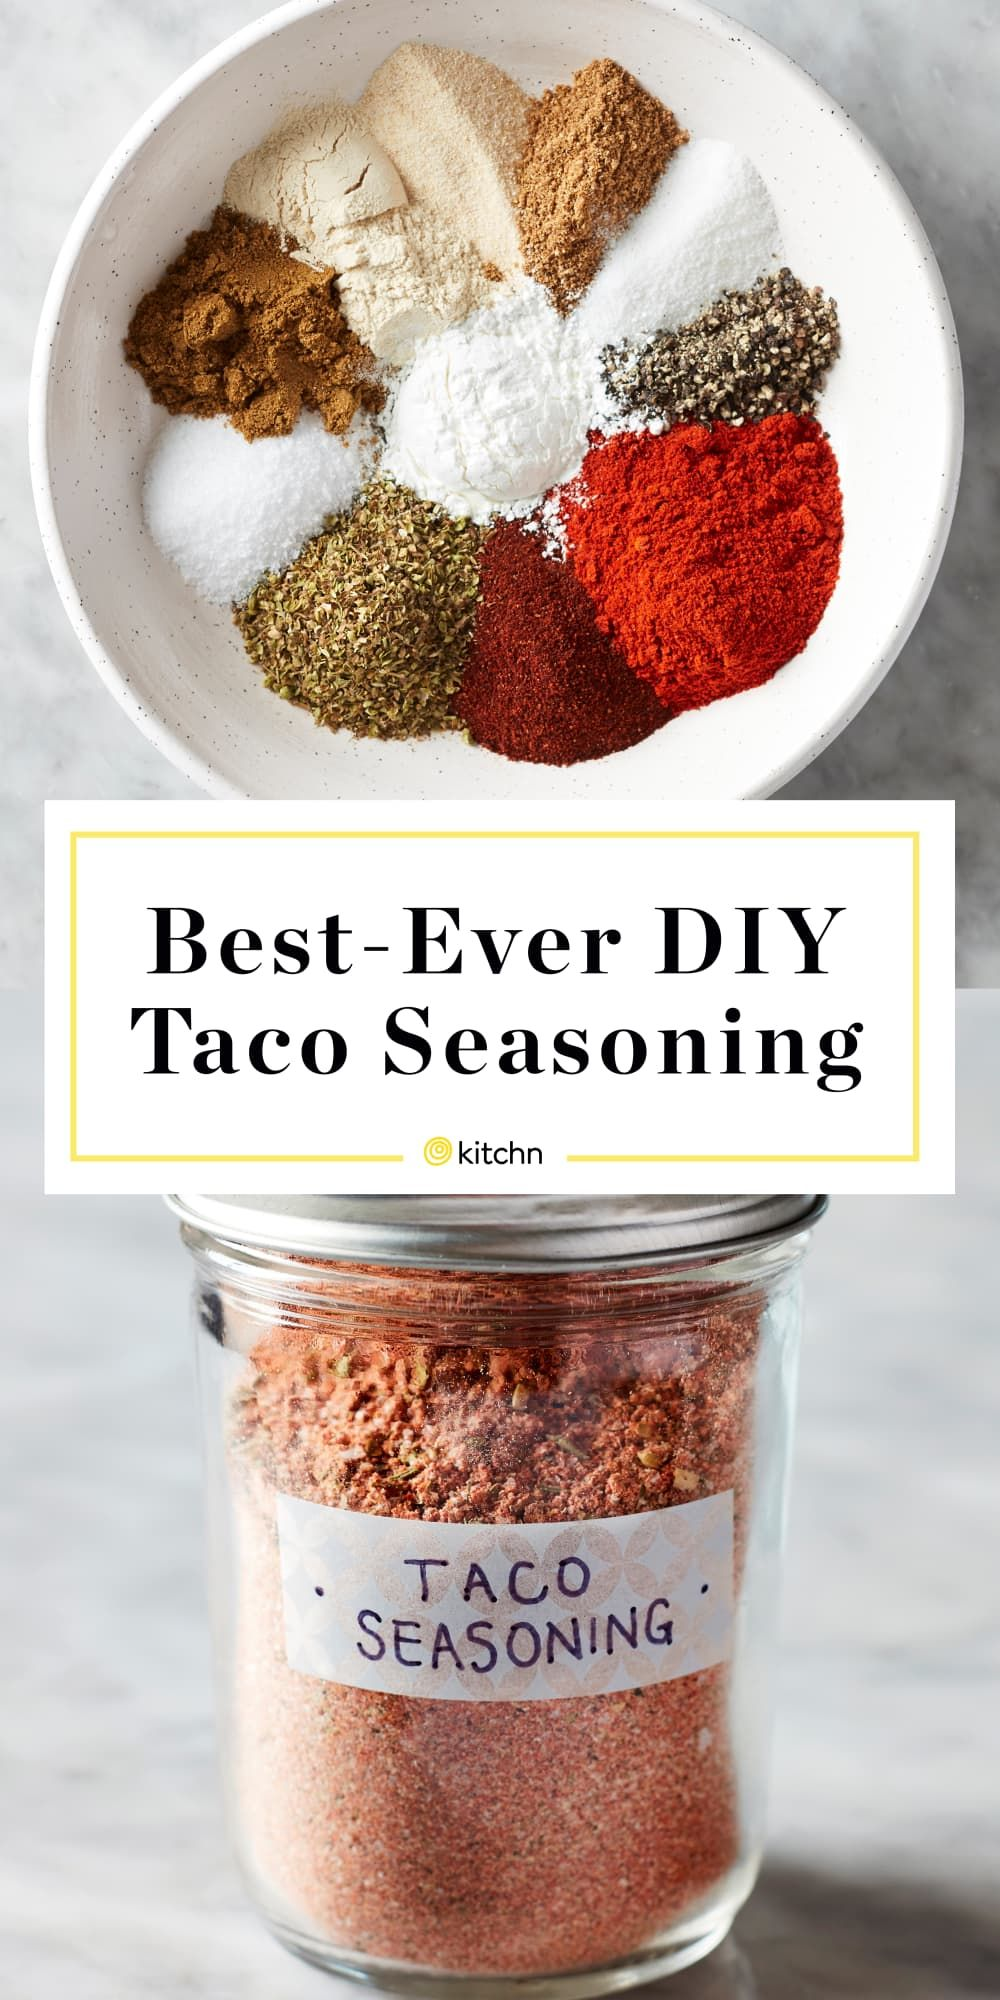 How to Make Homemade Taco Seasoning That's Better Than Store-Bought